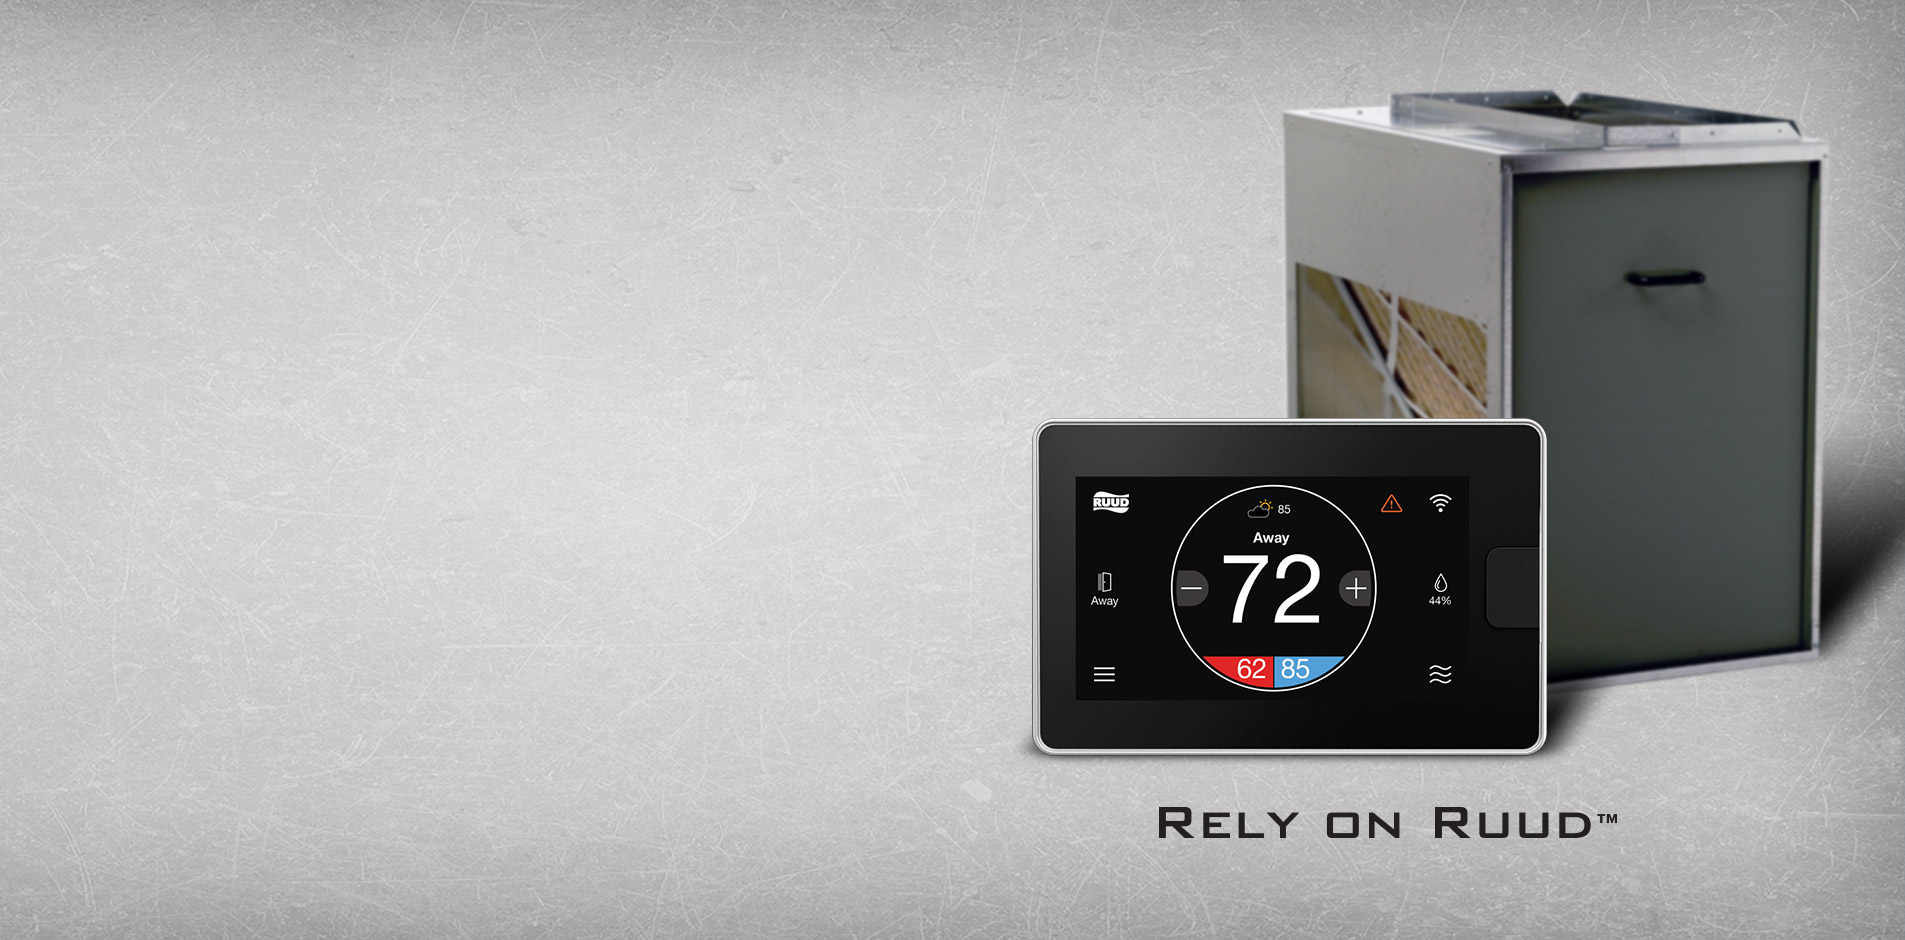 Image for Thermostats & Air Purifiers